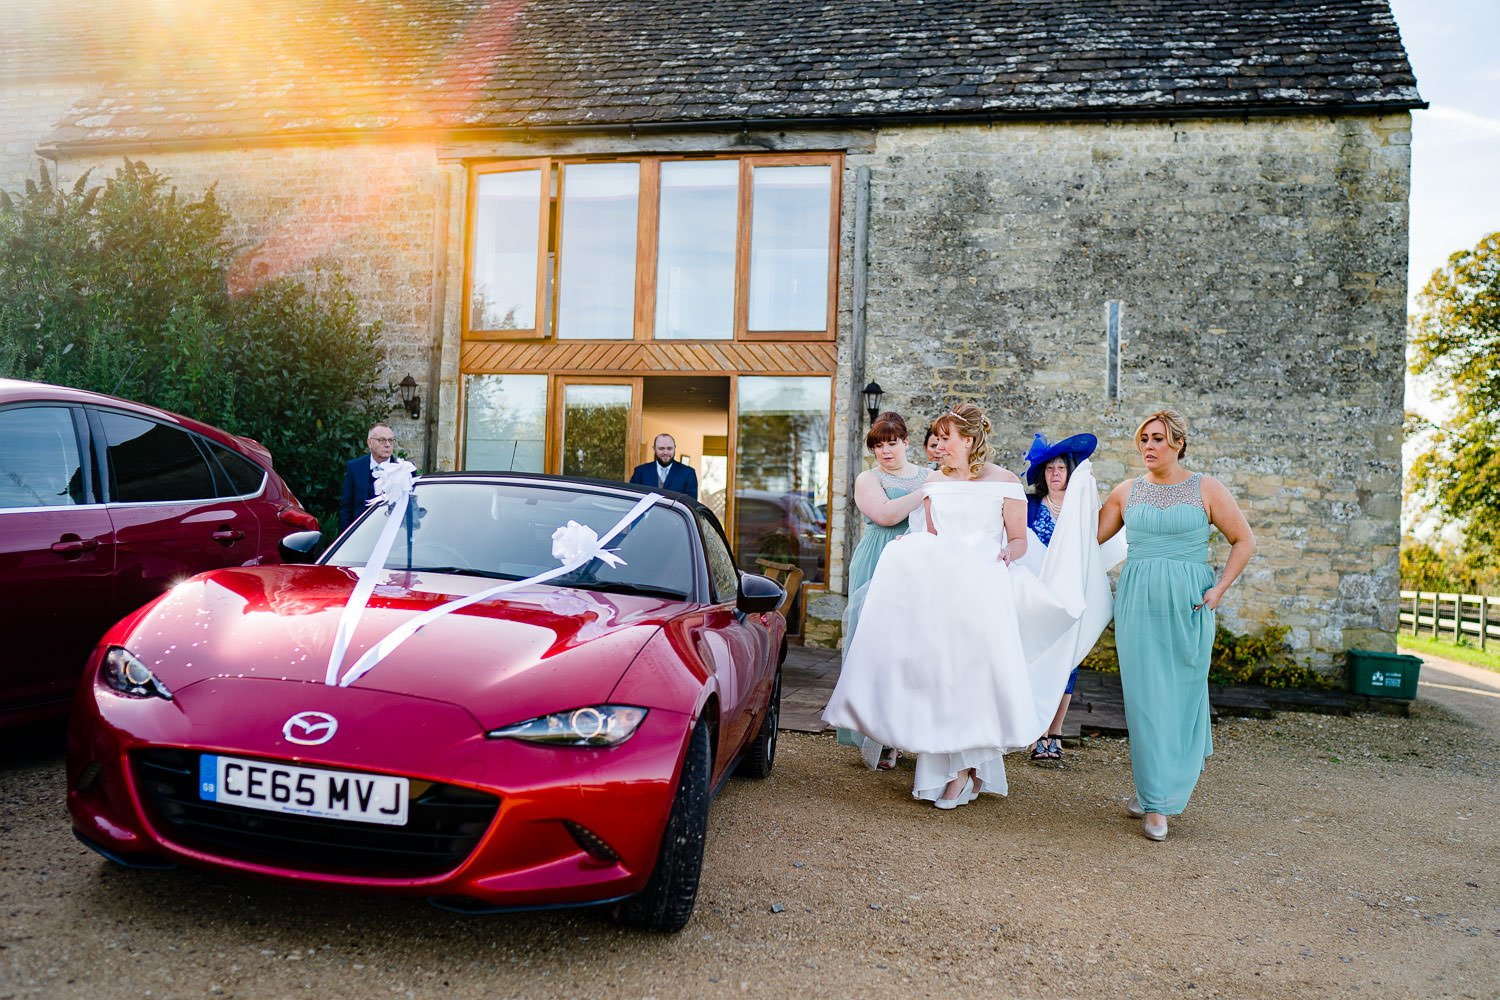 The Kingscote Barn wedding